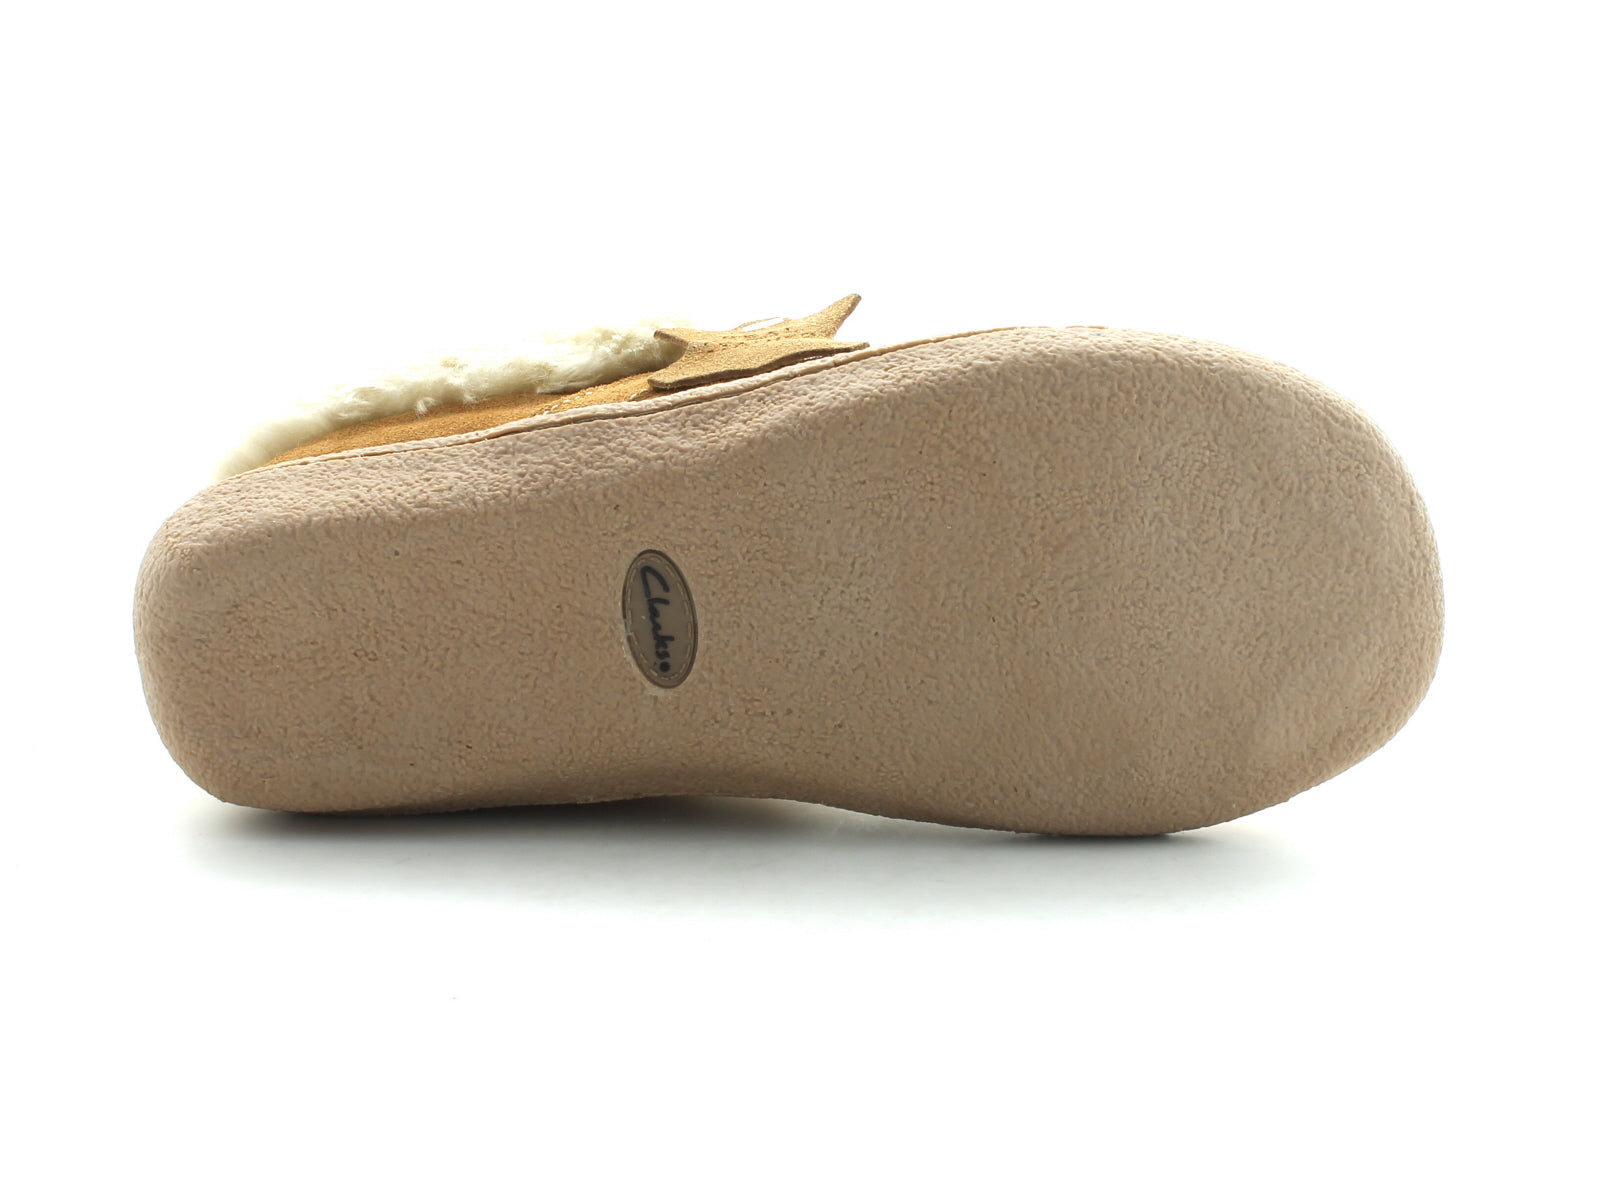 Clarks Eskimo Snow in Tan Suede sole view